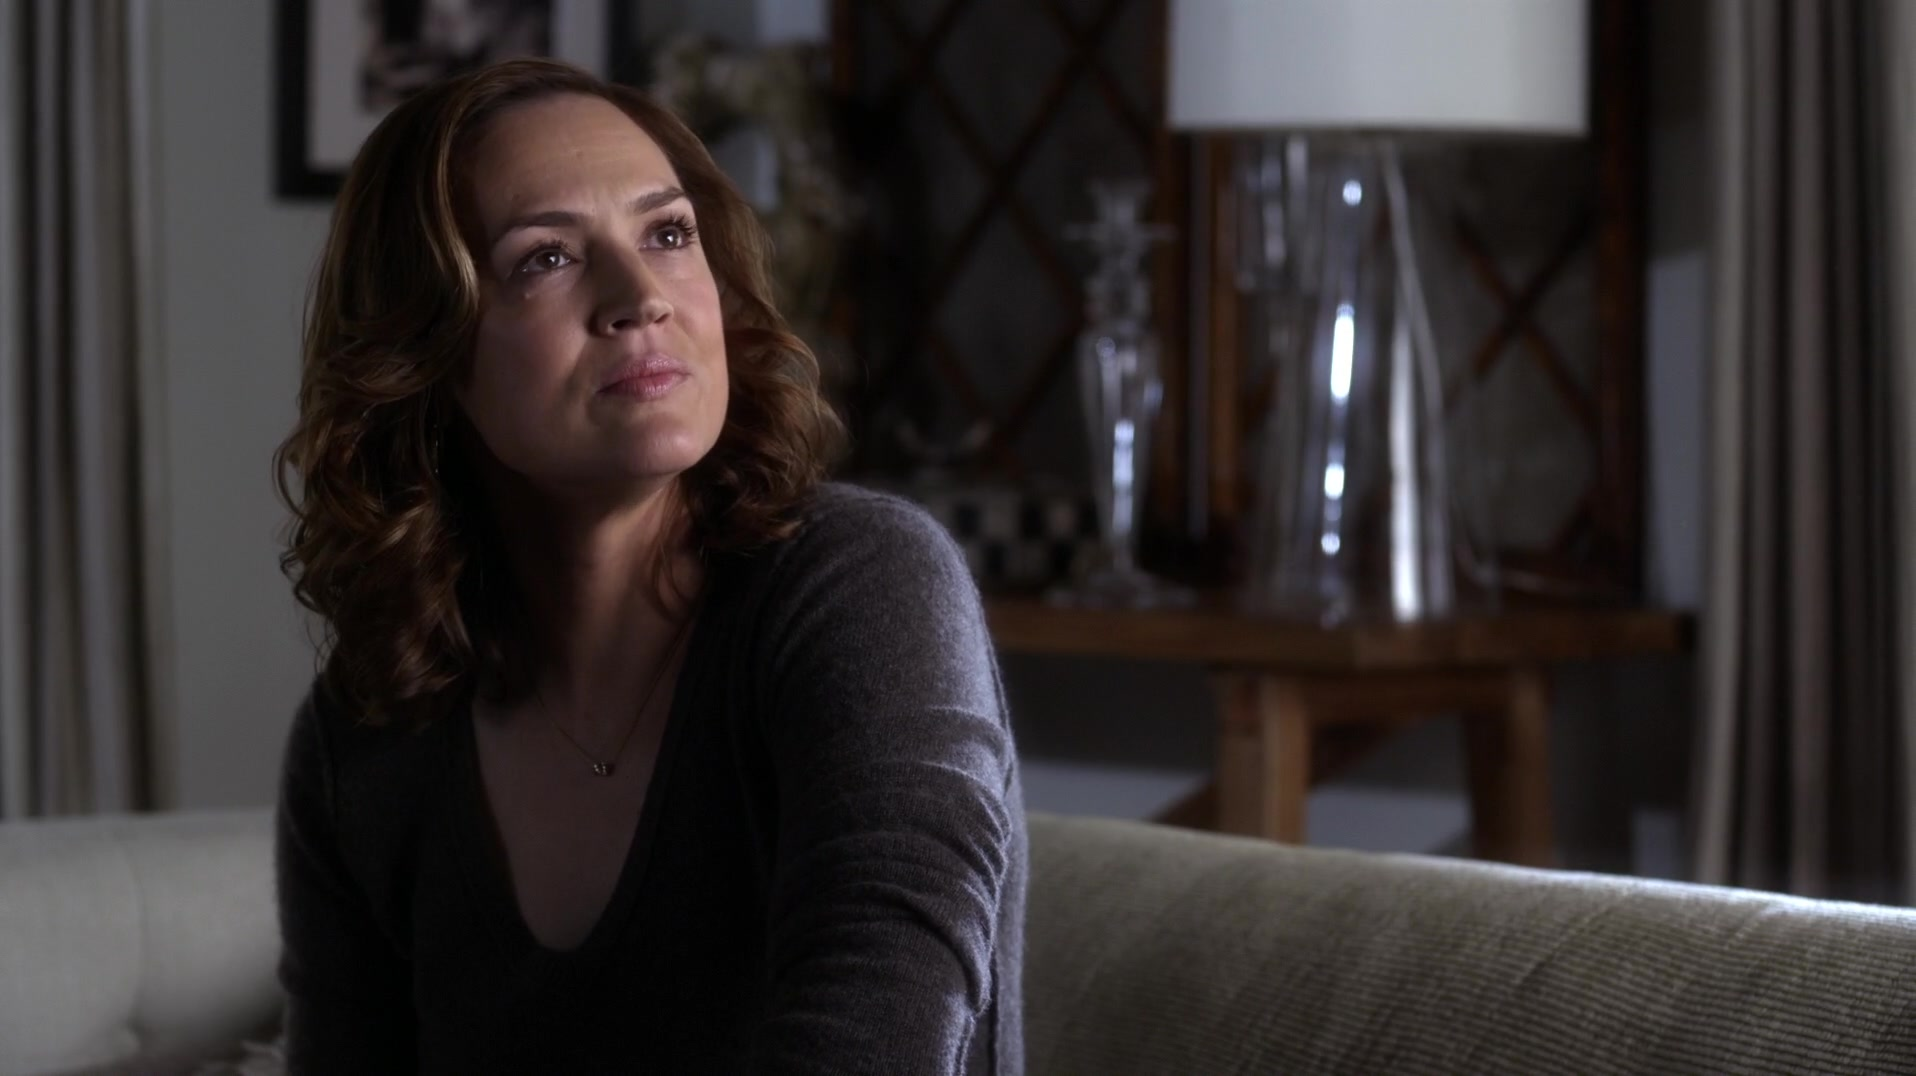 Related spencer hastings living room hanna marin kitchen - Veronica Is Looking Out The Side Door Window To The Crime Scene Technicians And Comments That It S Like Living In The Middle Of A Demolition Site Spencer